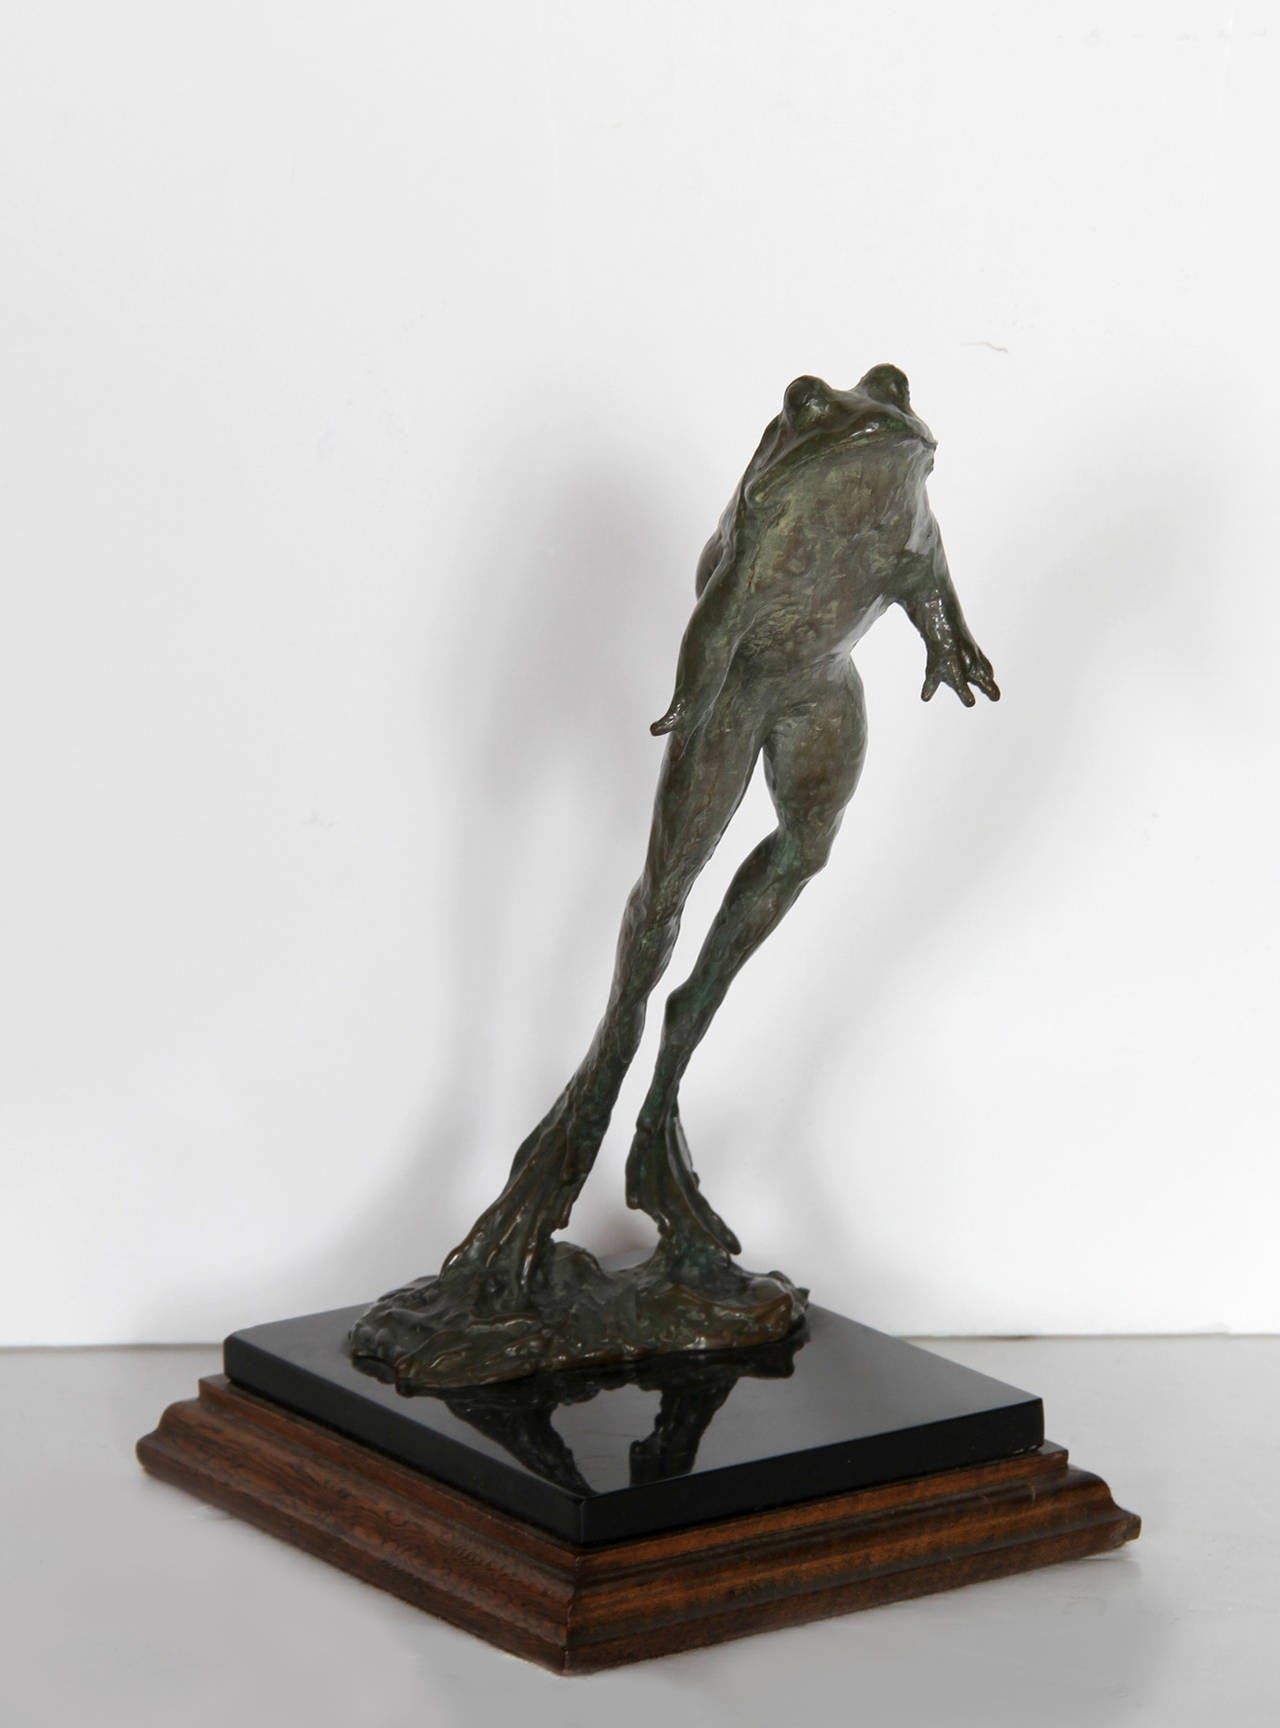 Leaping Frog For Sale 2